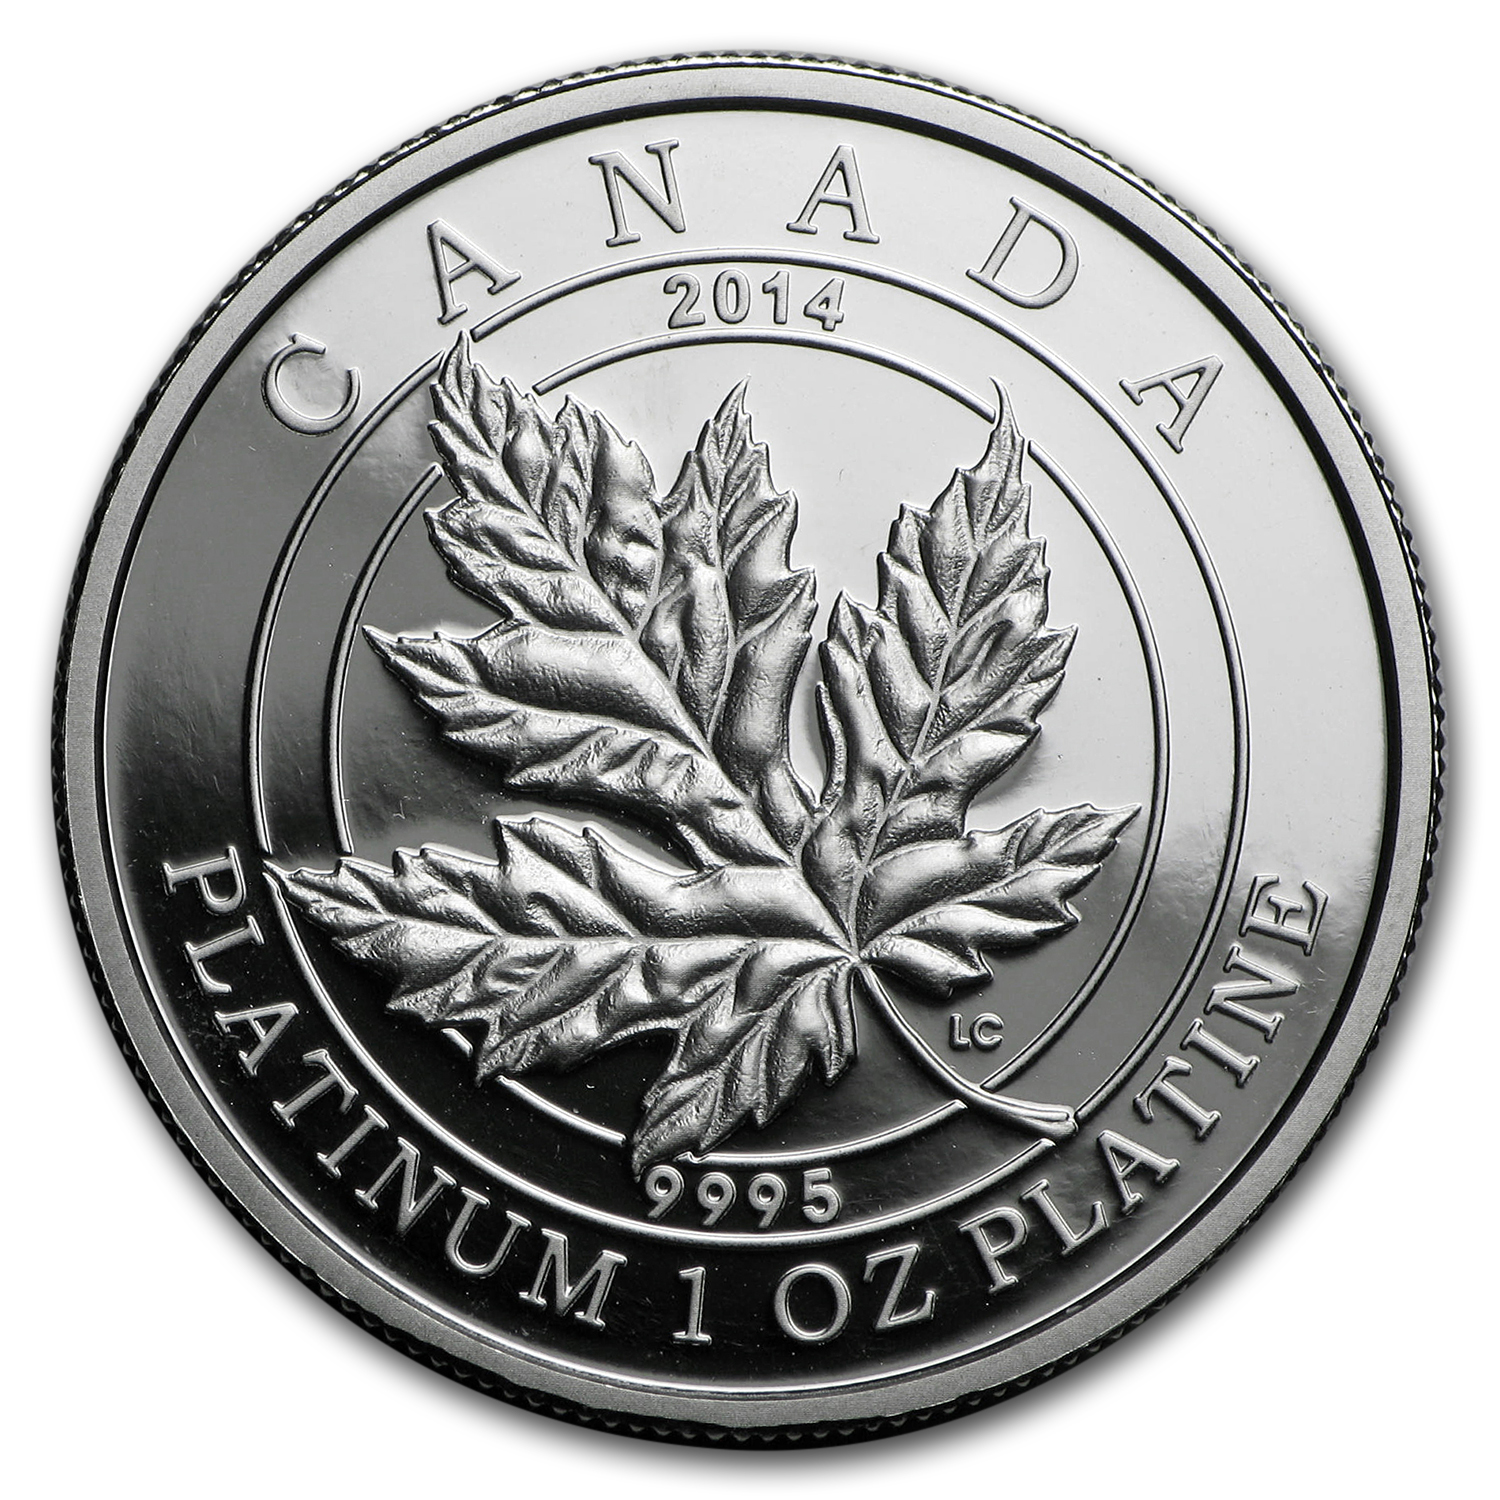 2014 Canada 1 oz Pf Platinum $300 Maple Leaf Forever (Coin Only)